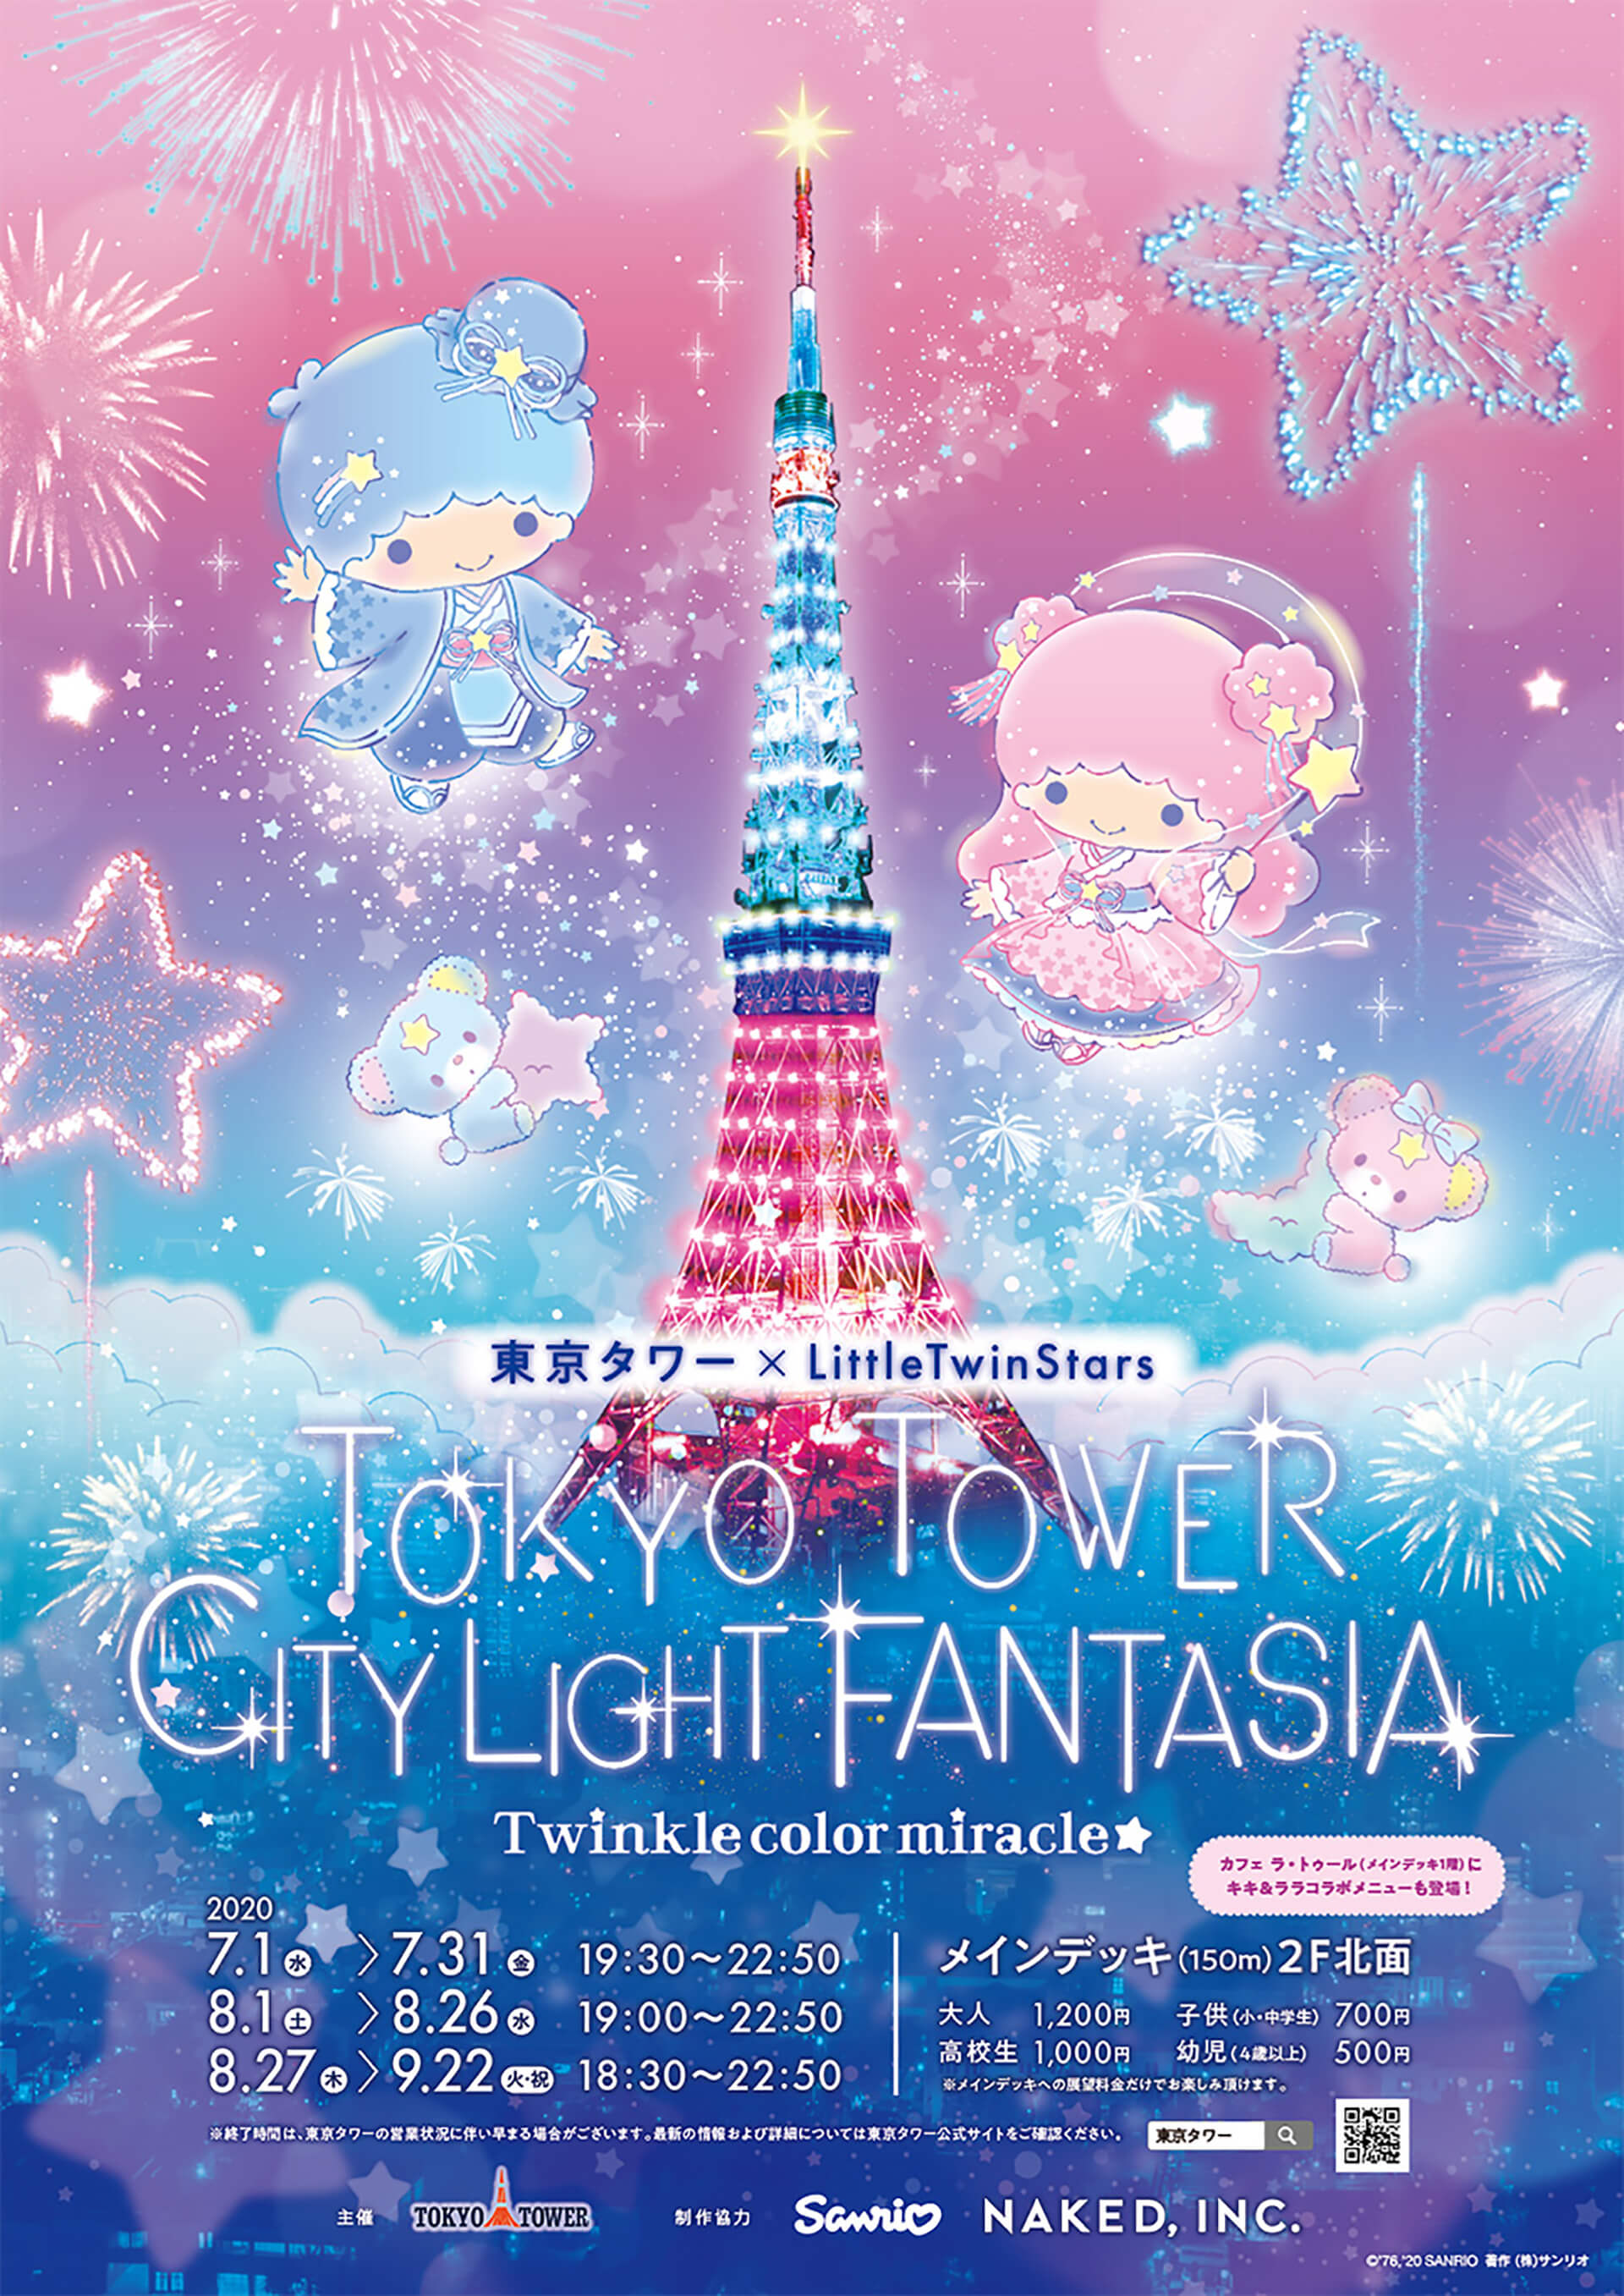 Twinkle color miracle☆